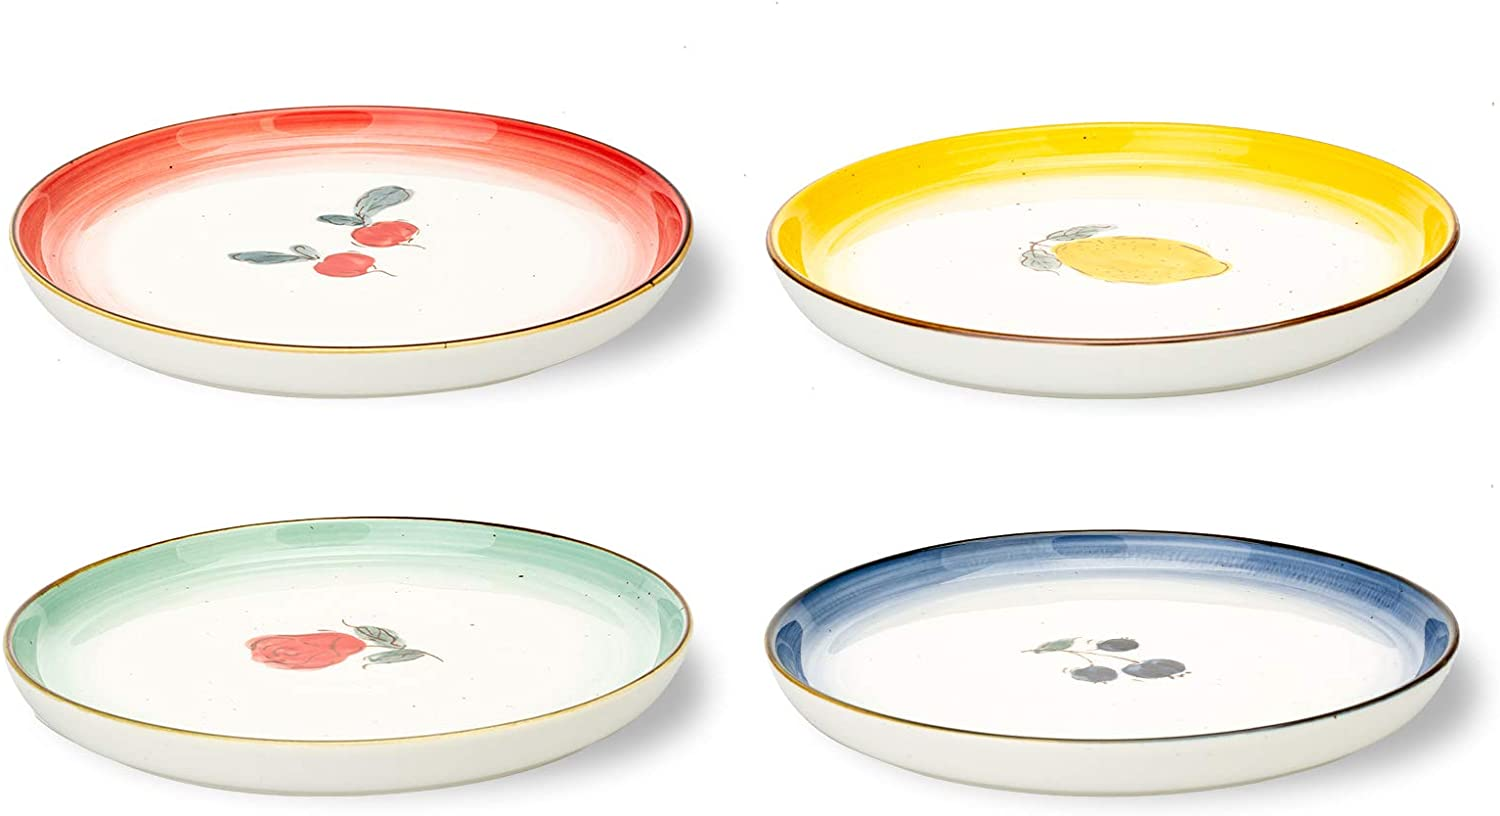 MDZF SWEET HOME Don't miss the campaign 8.2-Inch Porcelain Plates Serv Dinner Set Bargain Pasta